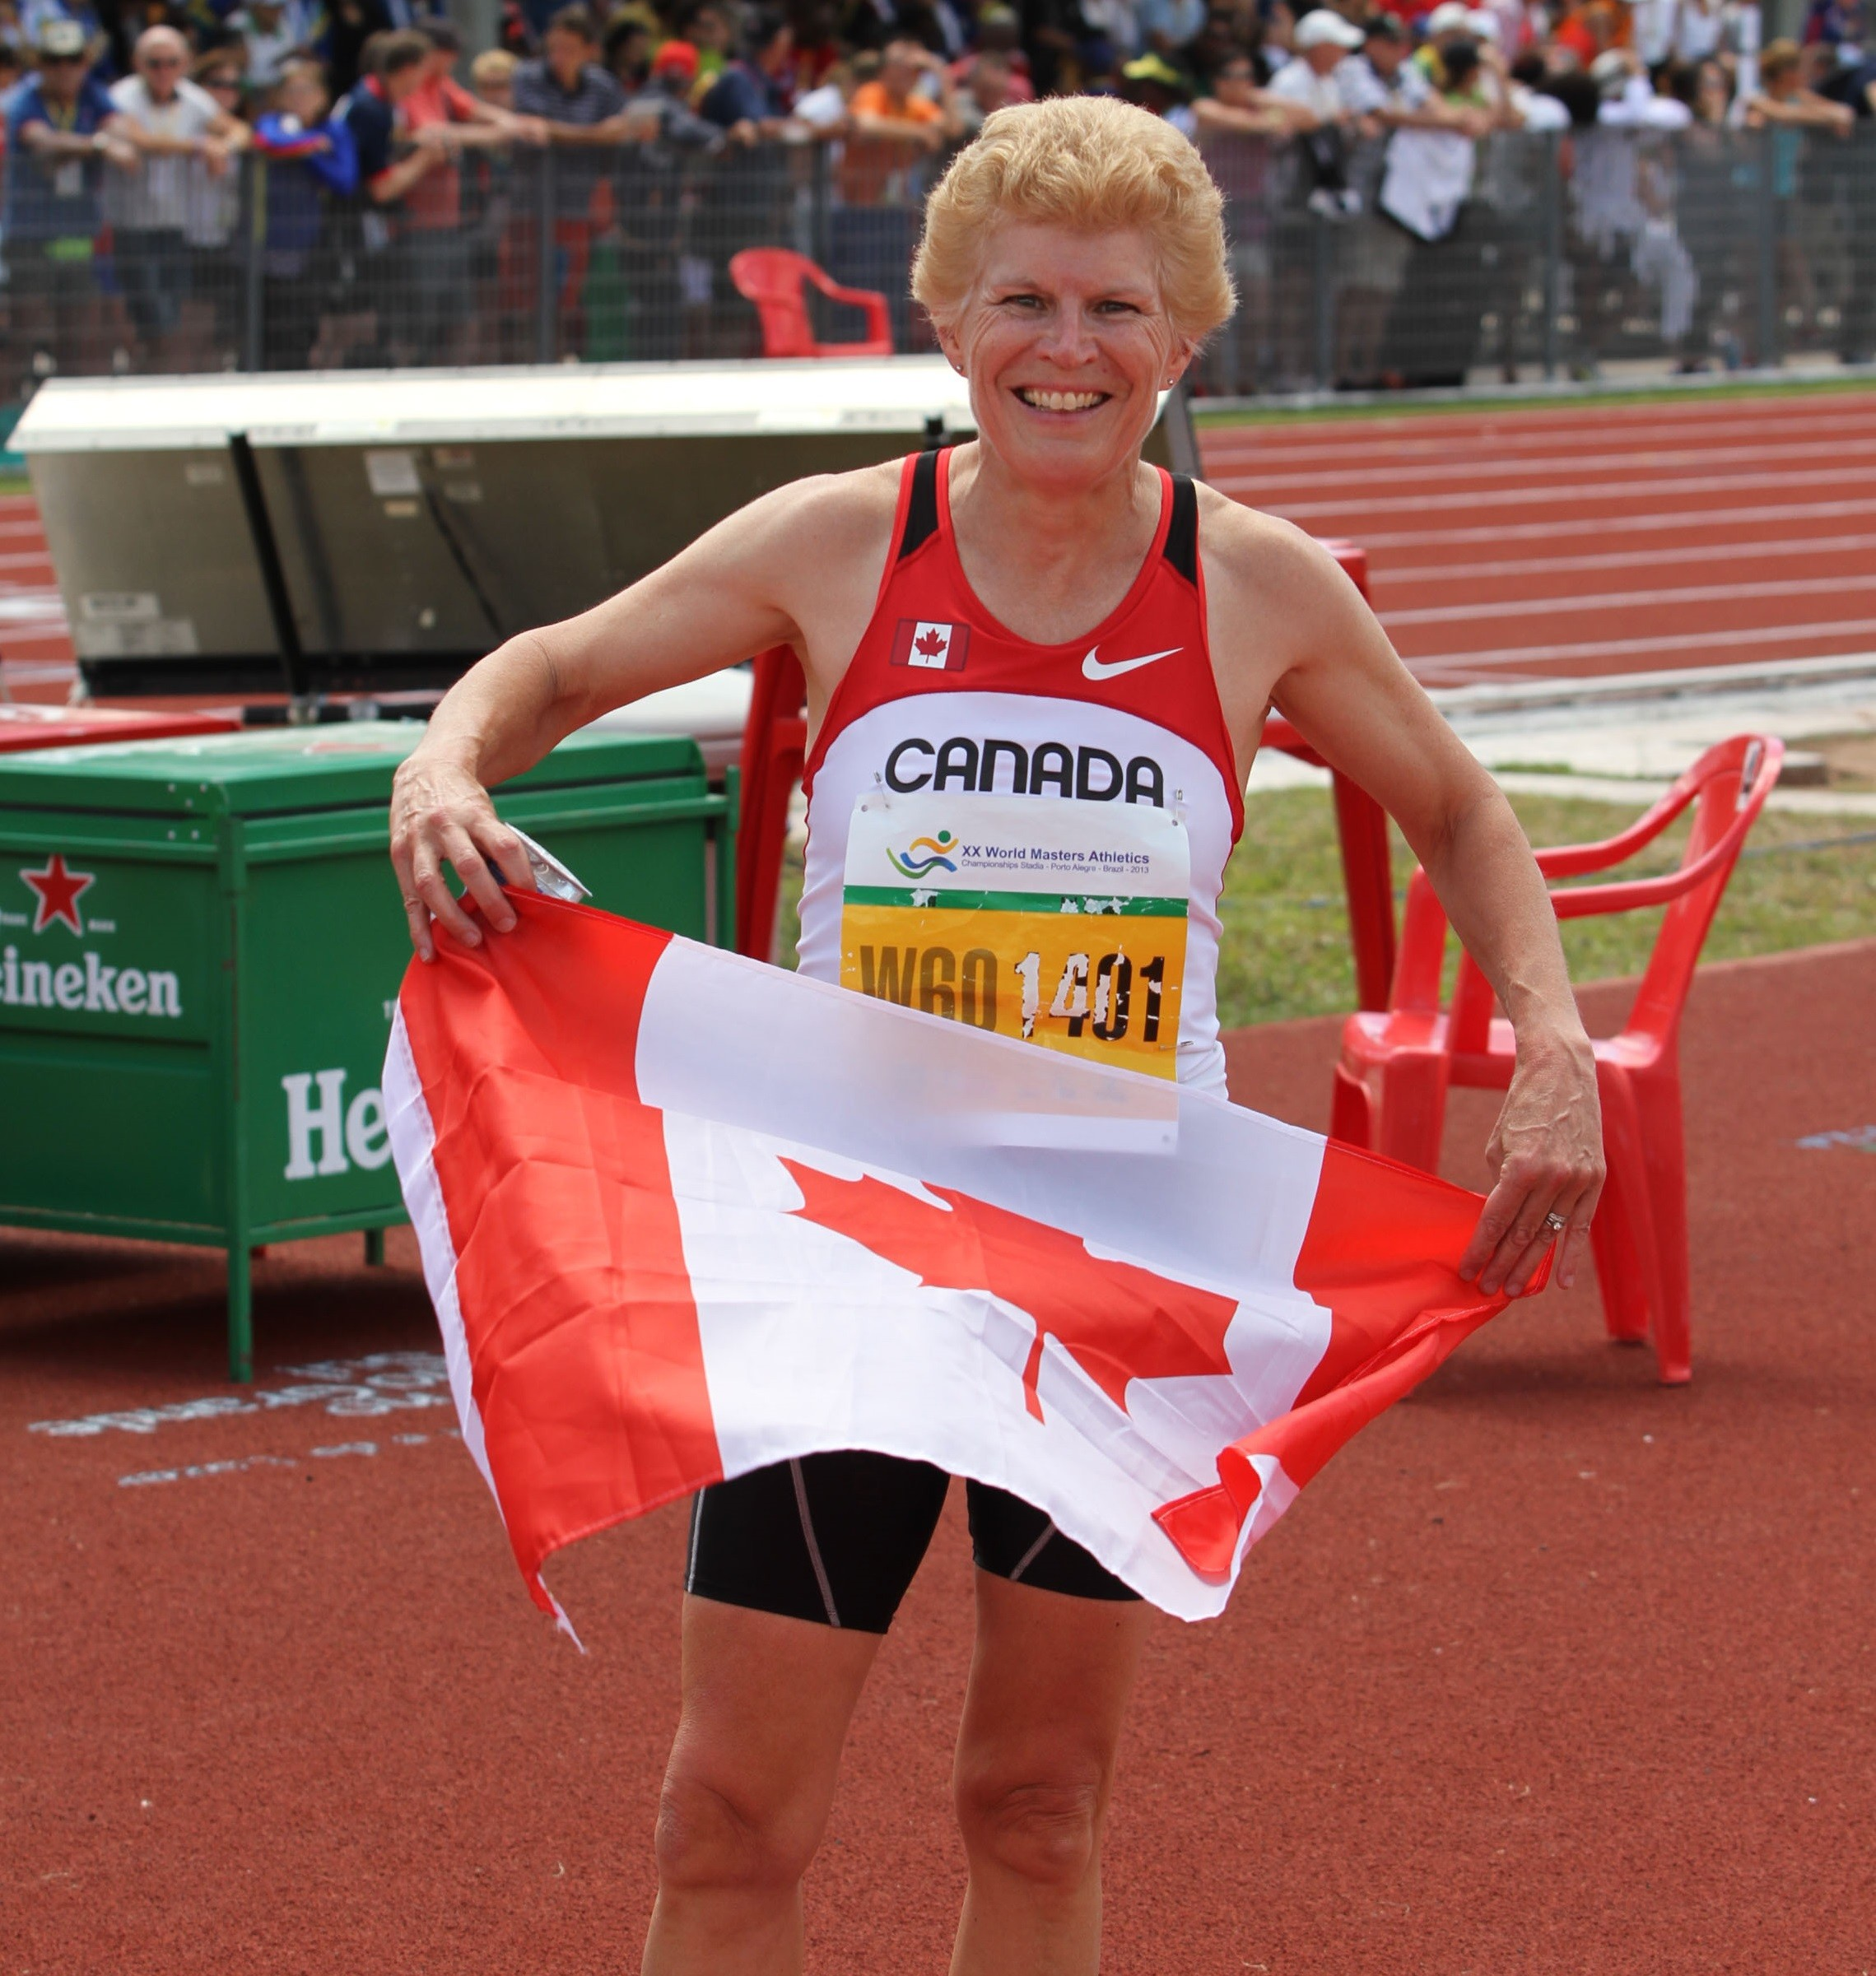 Karla del Grande of Toronto set new world records in both the 100m and 200m for women aged 65-69 at the World Masters Athletics Championships